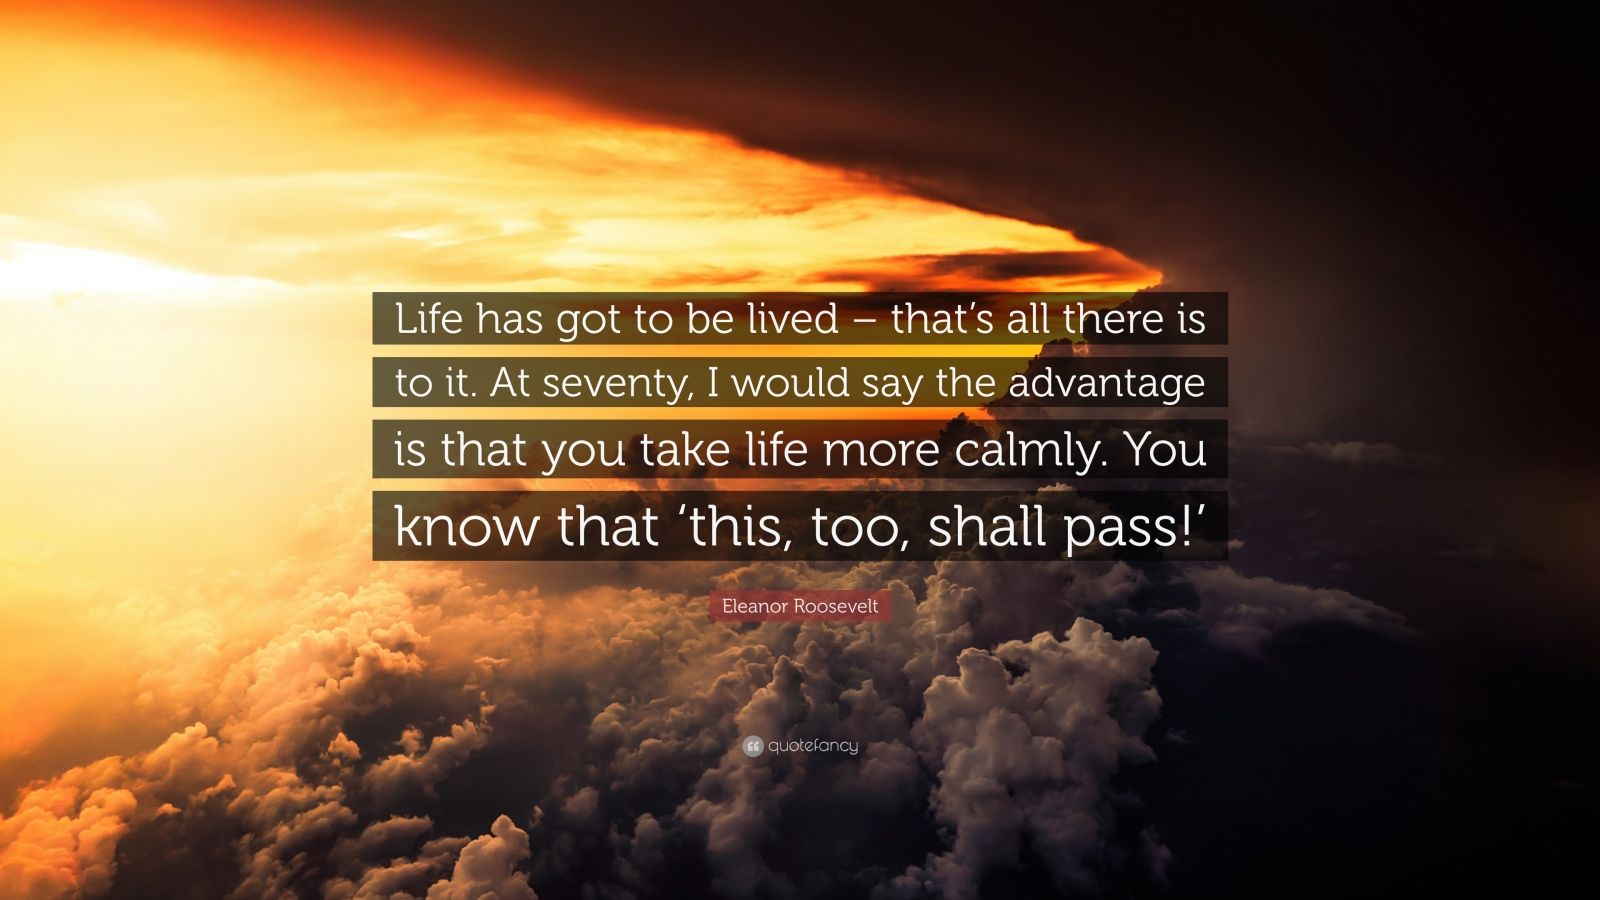 """Eleanor Roosevelt Quote: """"Life has got to be lived – that's all there is to it. At seventy, I would say the advantage is that you take life more calmly. You know that 'this, too, shall pass!'"""""""